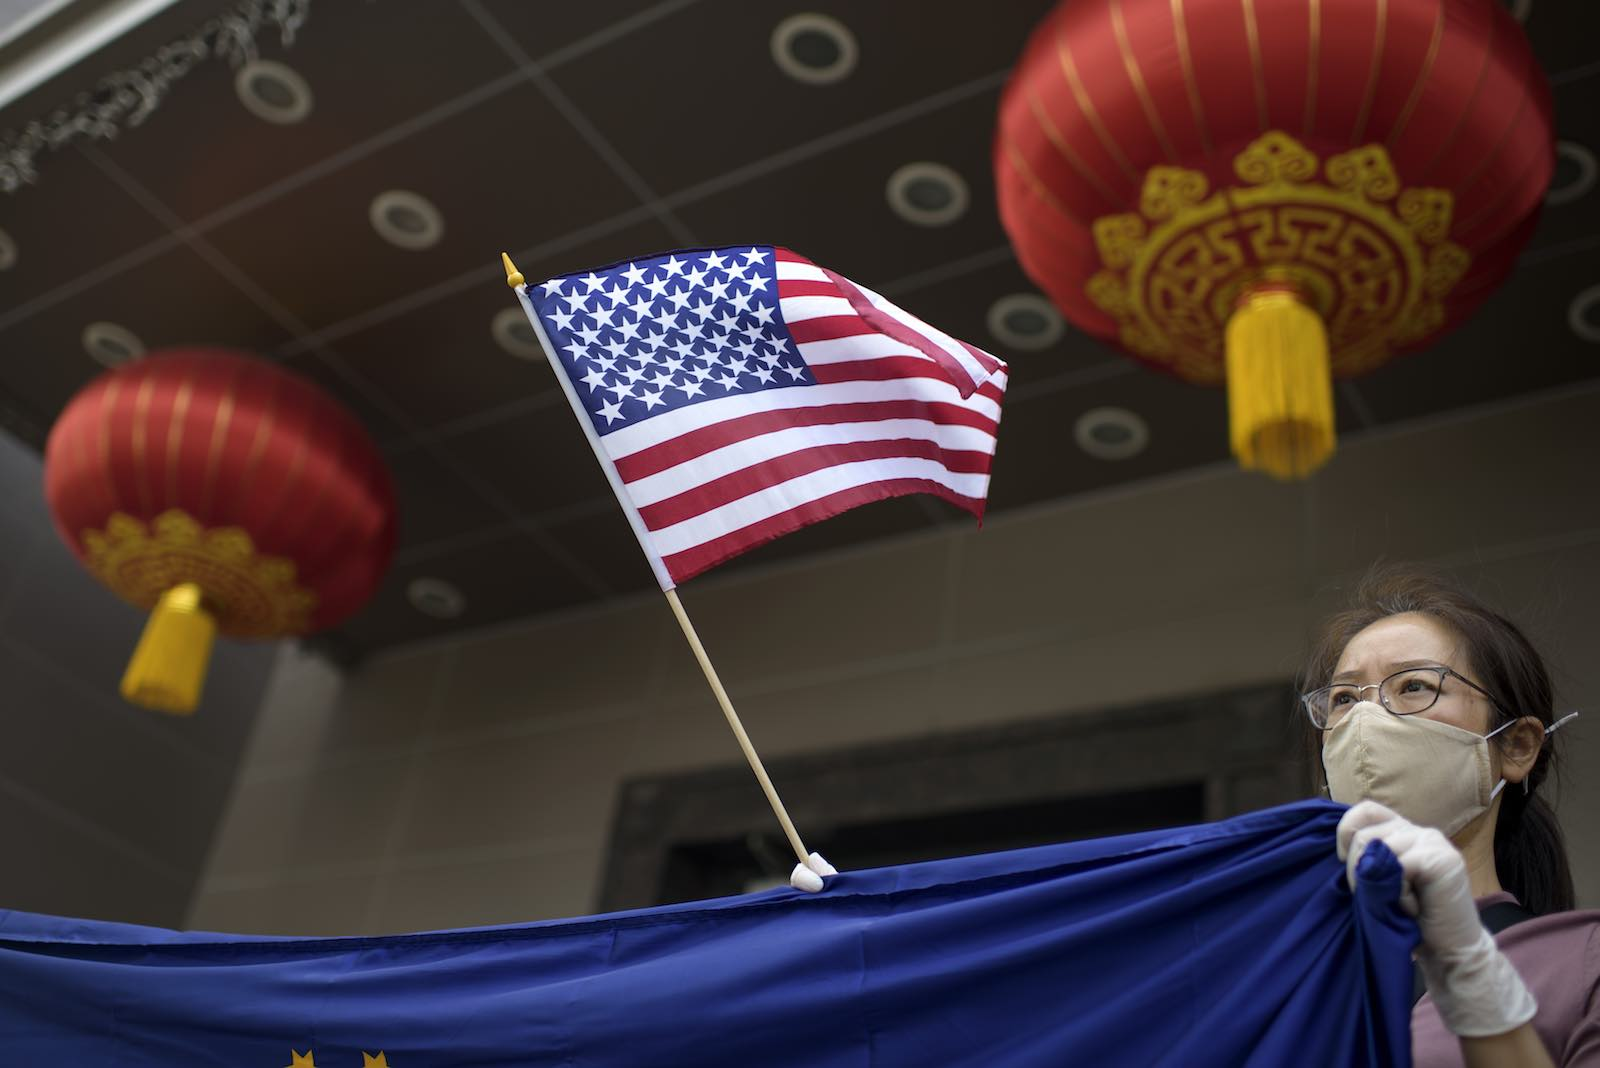 A protester holds a US flag outside of the Chinese consulate in Houston after the Trump administration ordered it be closed (Mark Felix/AFP via Getty Images)